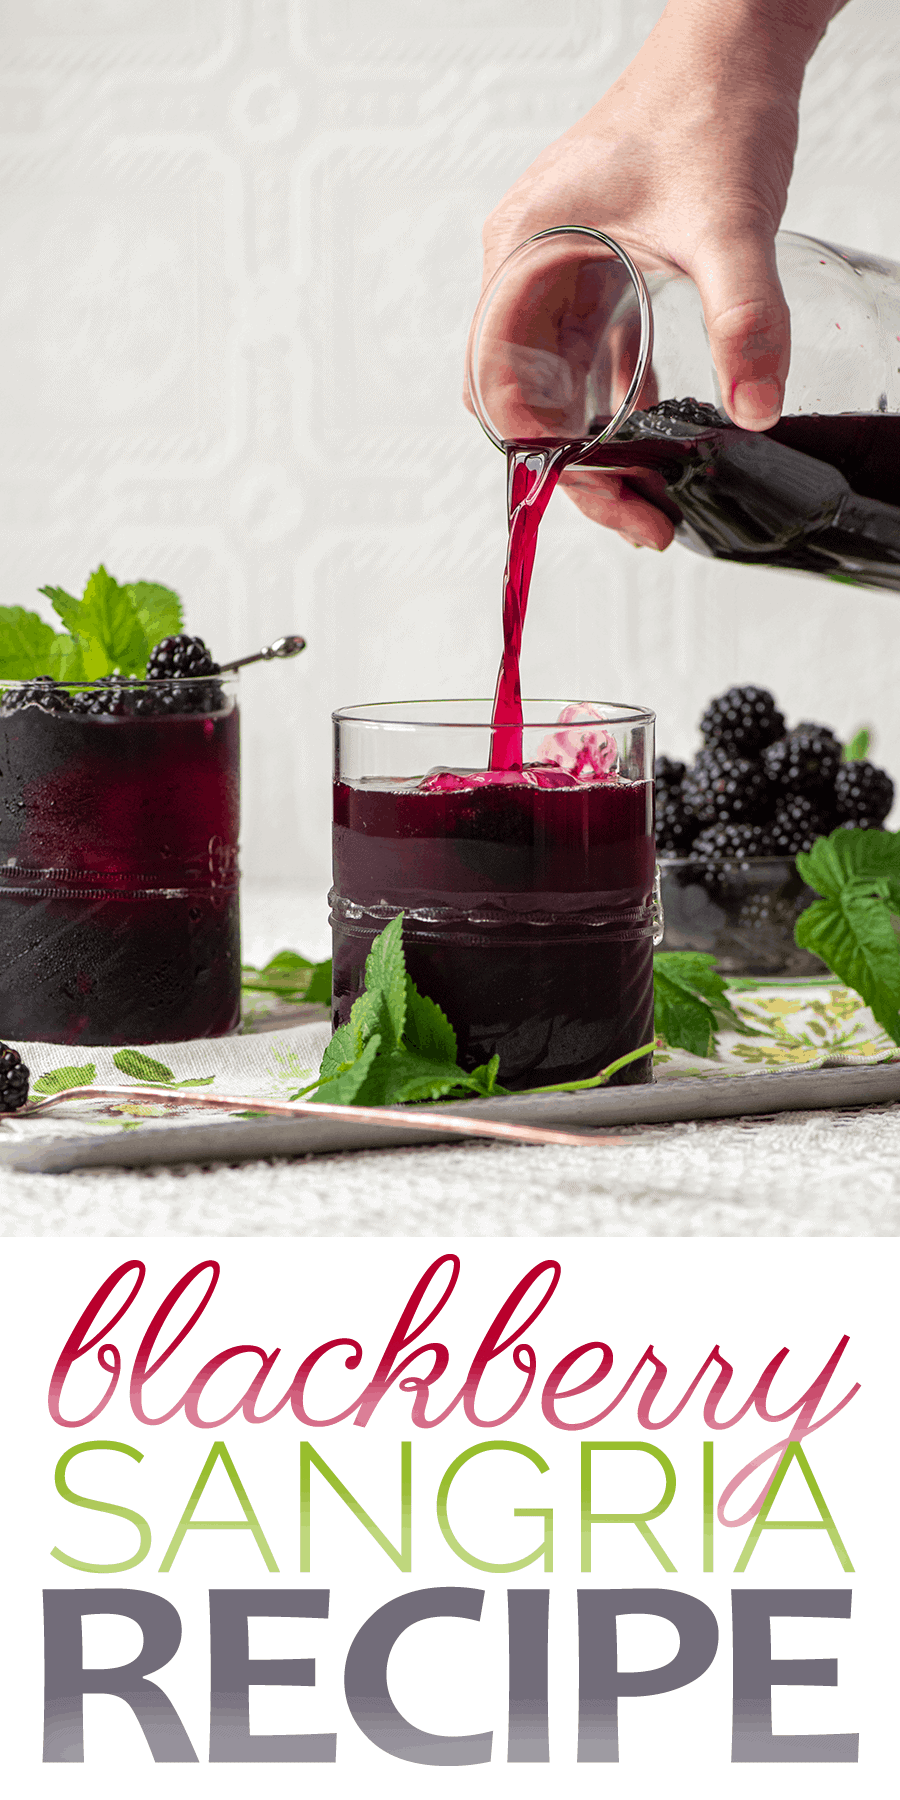 Blackberry sangria recipe - Easy Blackberry Sangria- Make a pitcher or a single glass!